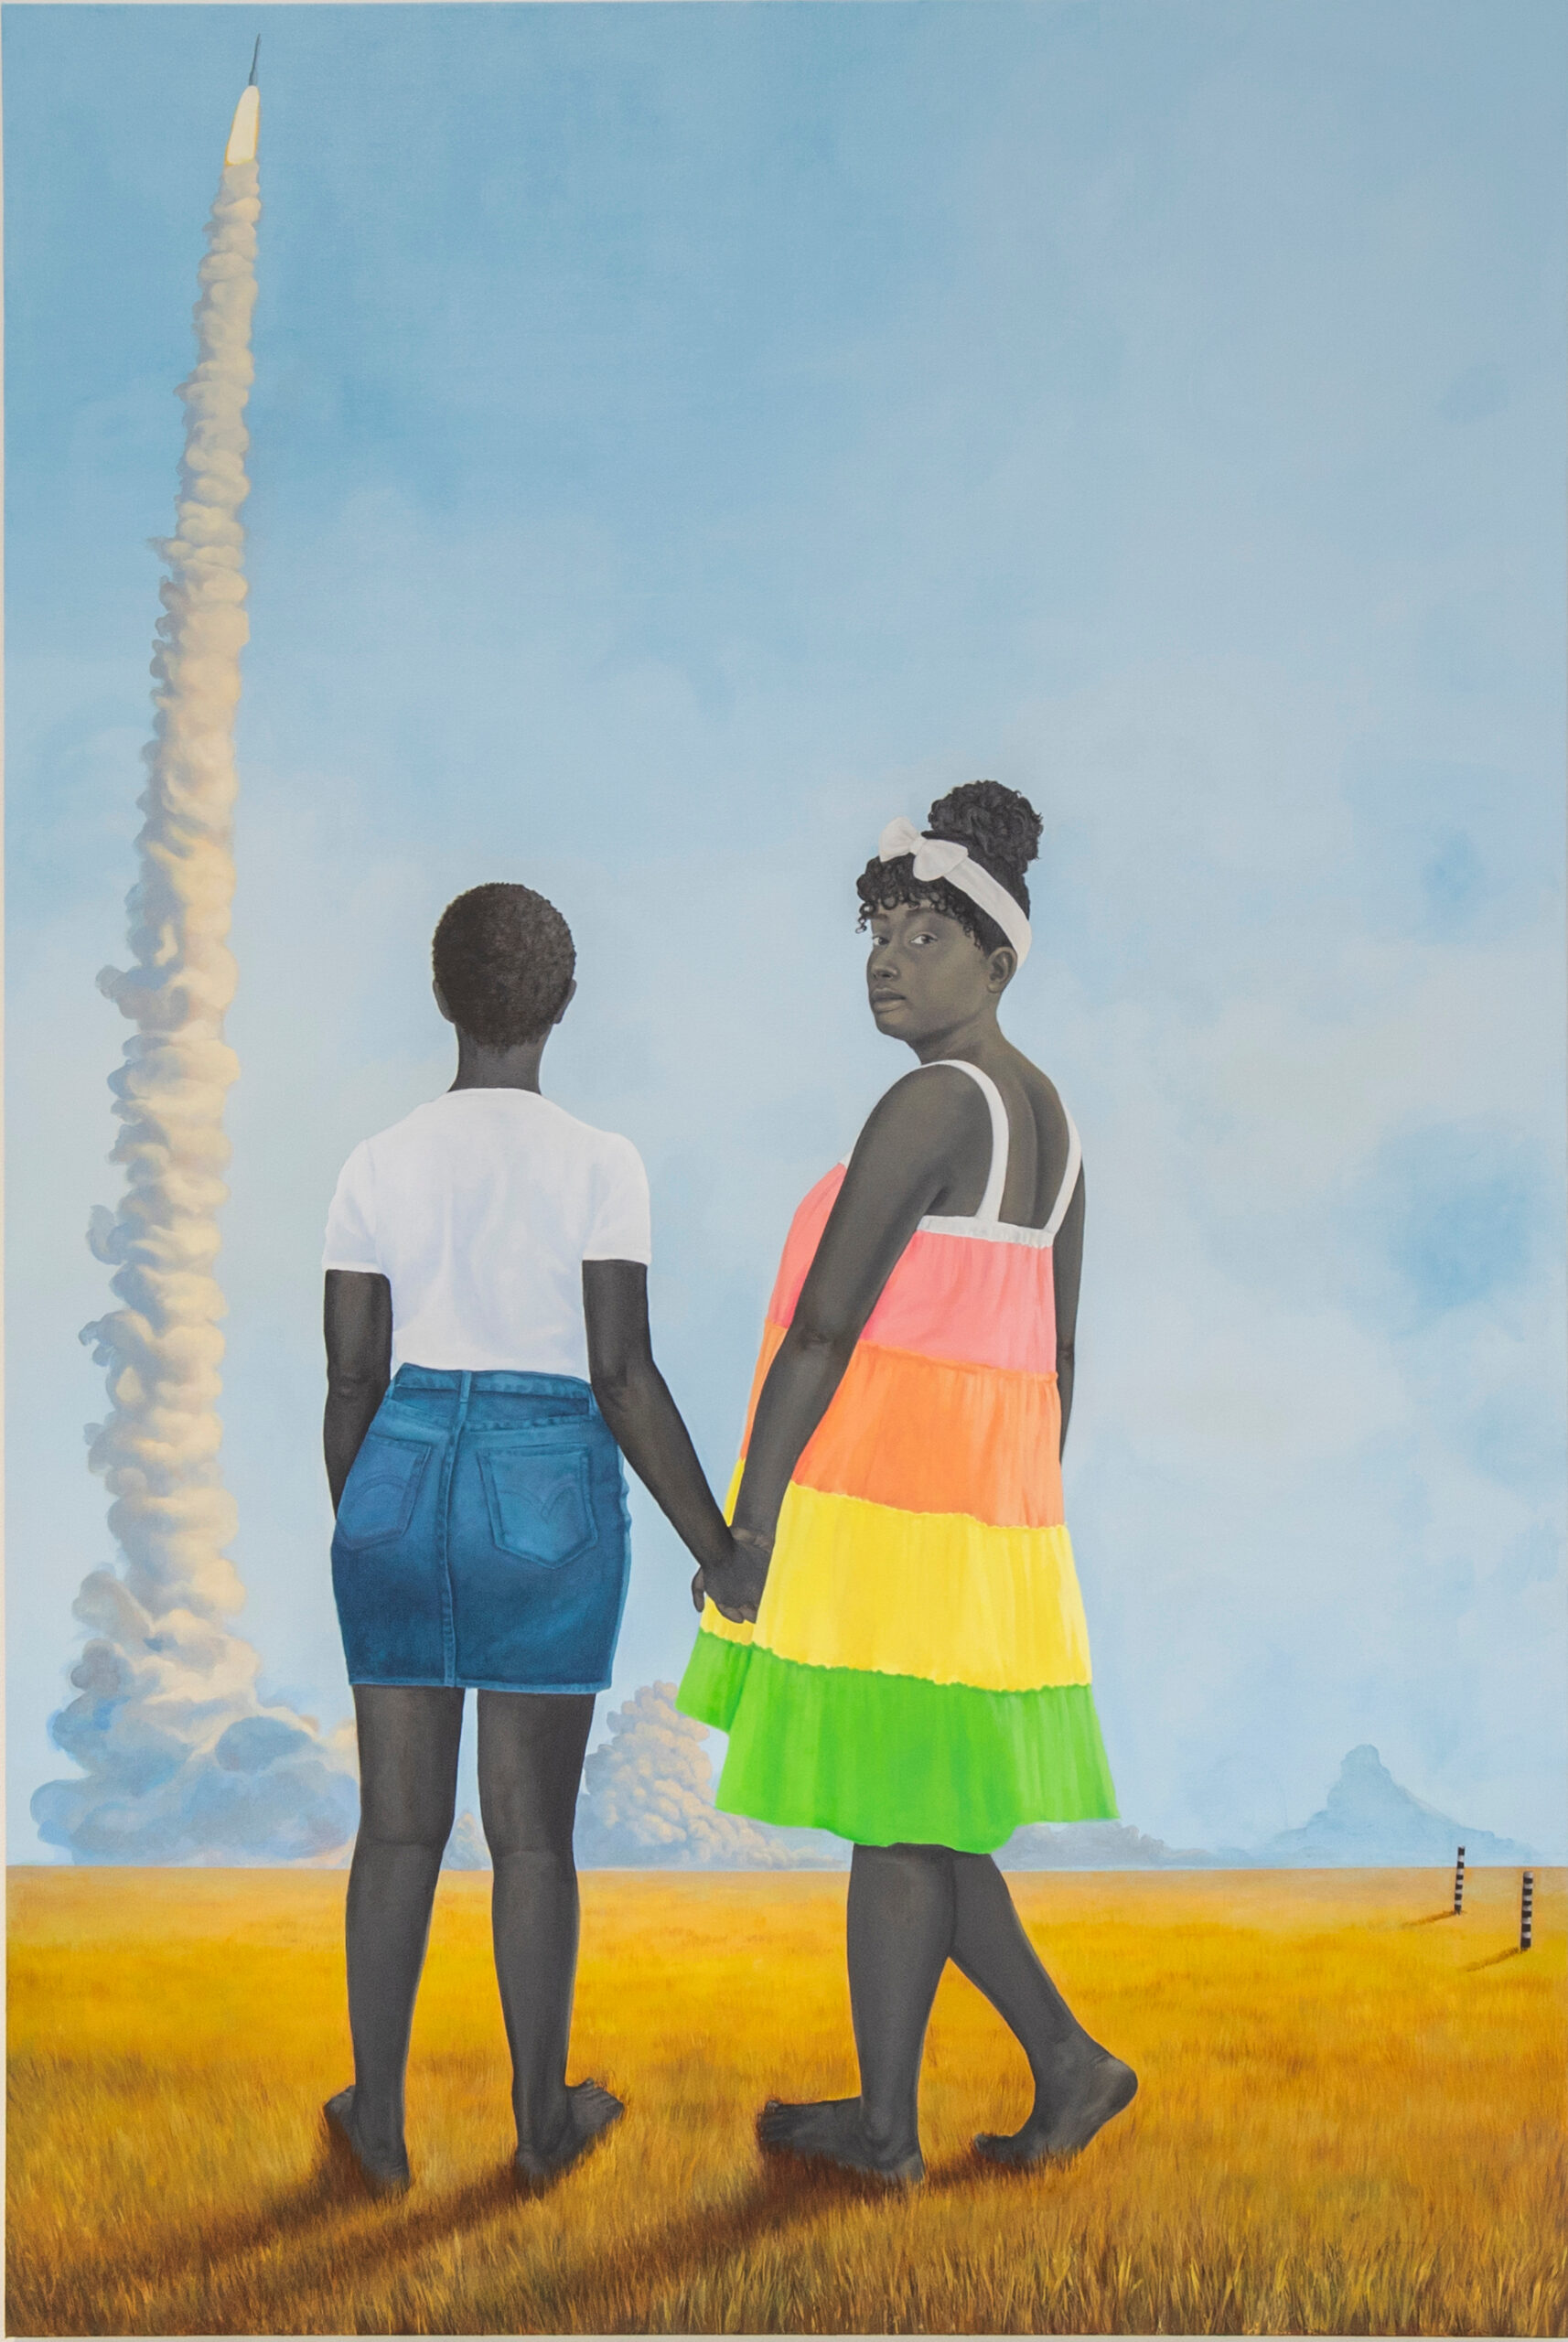 Amy Sherald. Planes, rockets, and the spaces in between. 2018. The Baltimore Museum of Art: Purchase by exchange with funds provided by the Pearlstone Family Fund and through a partial gift of The Andy Warhol Foundation for the Visual Arts, Inc. BMA 2018.80